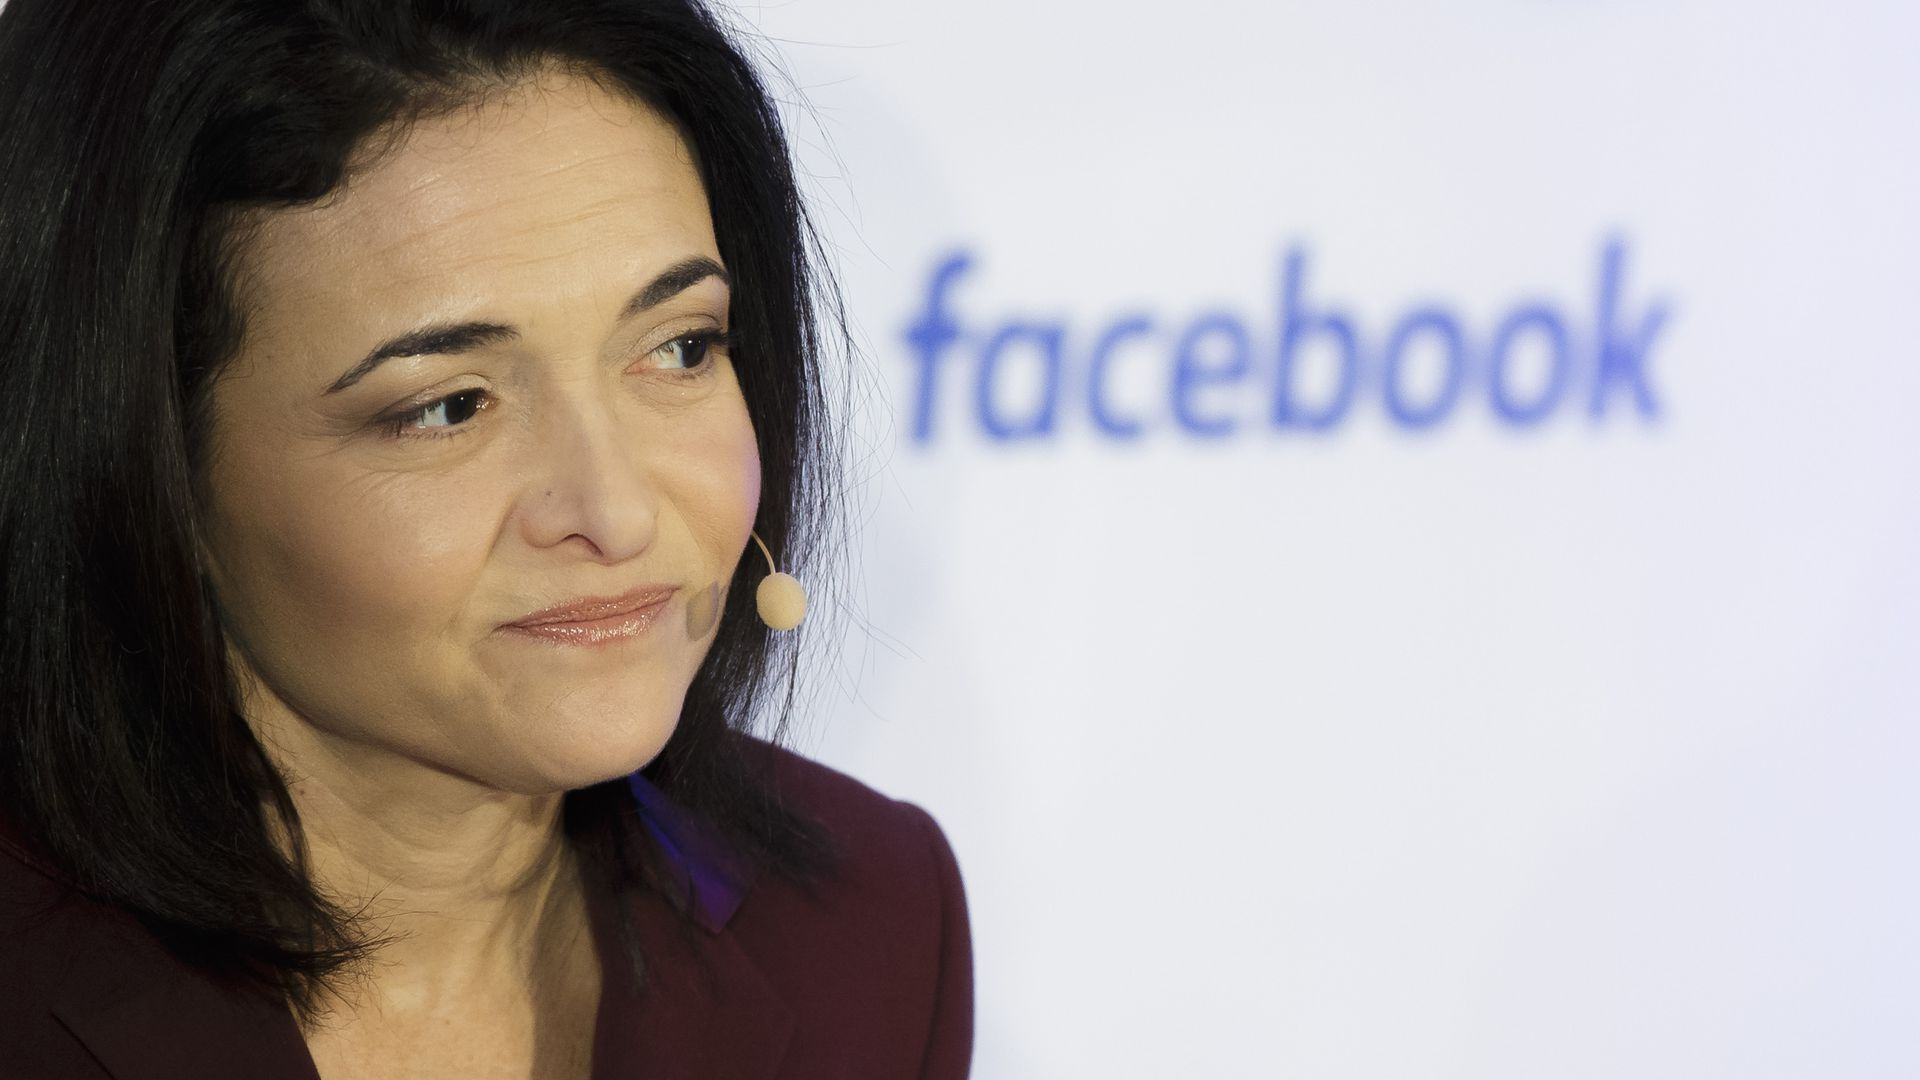 Chief Operating Officer at Facebook Sheryl Sandberg on January 18, 2016 in Berlin, Germany.